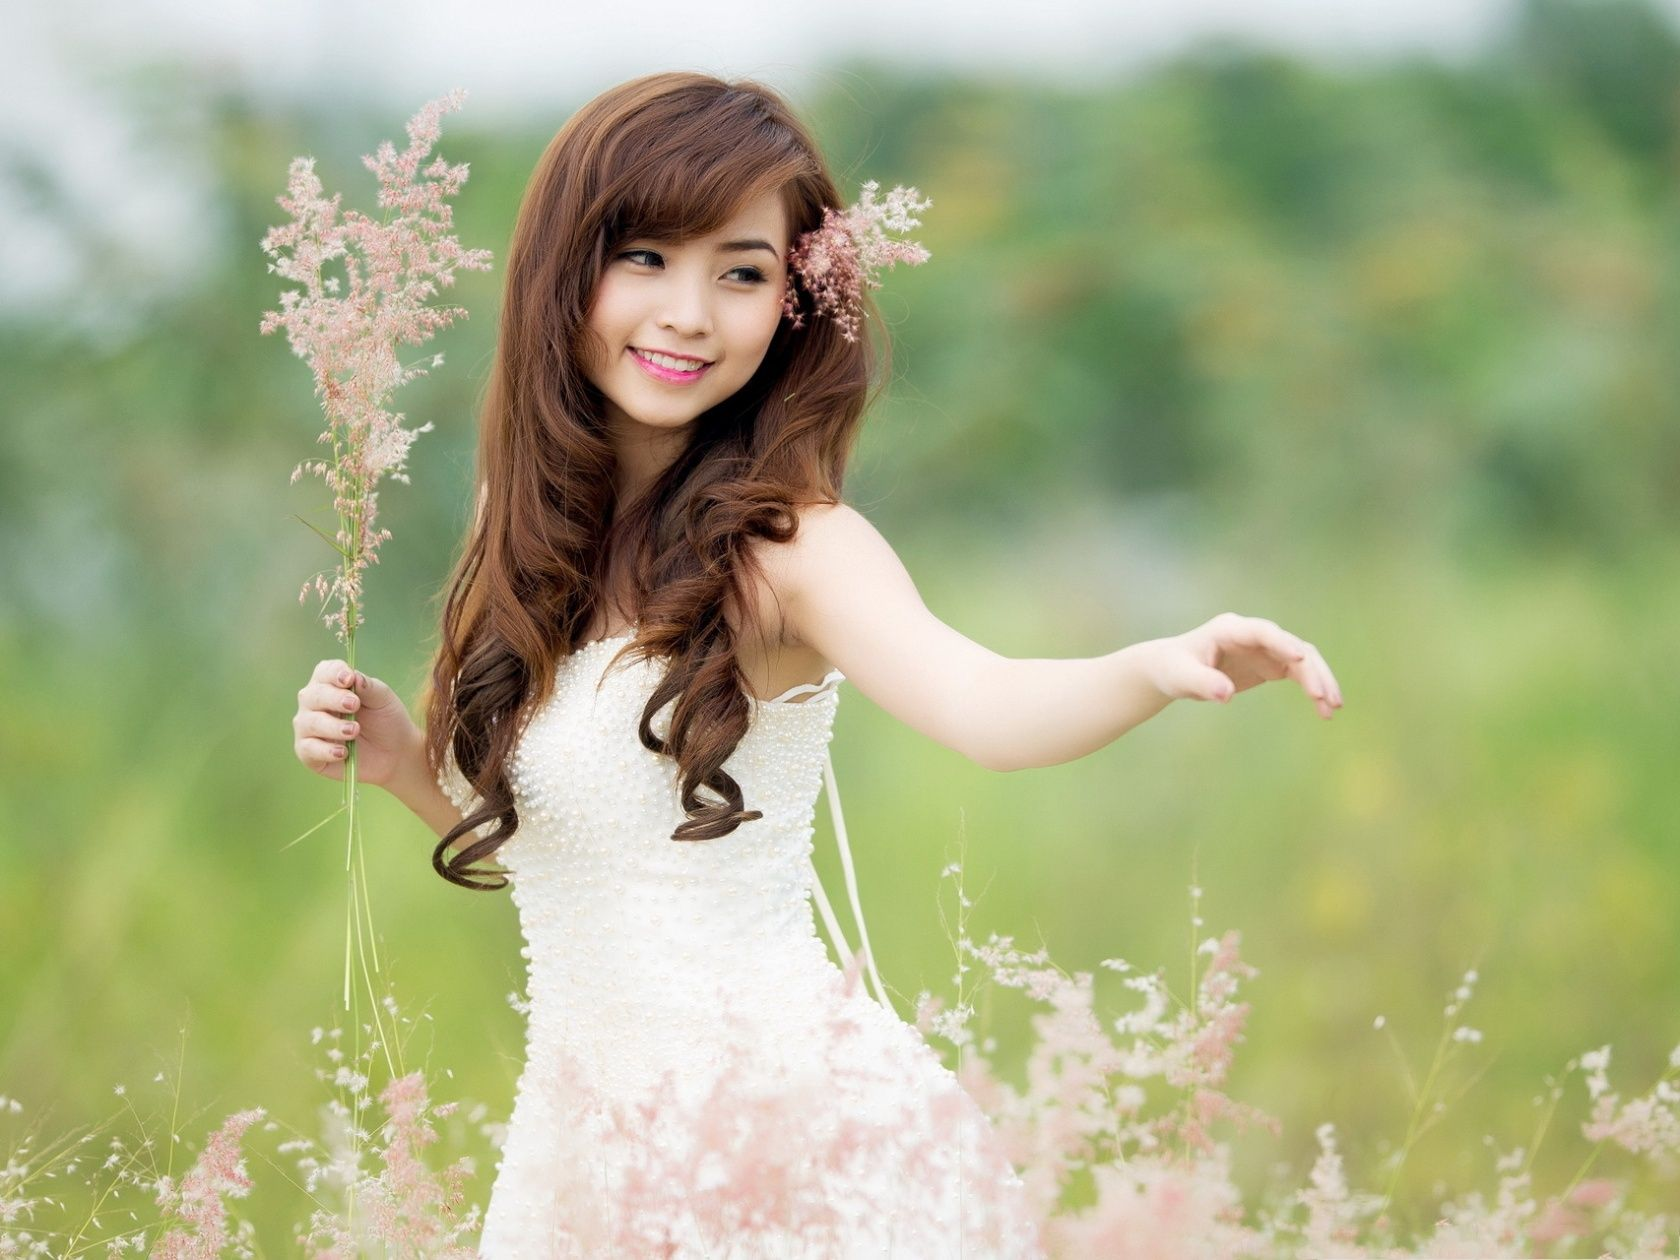 Girl In Nature Beautiful Girl Smiling Flowers In The Hair And Hands 1600x1200 Free Wallpaper In 2020 Beautiful Japanese Girl Beautiful Girl Wallpaper Girl Hairstyles